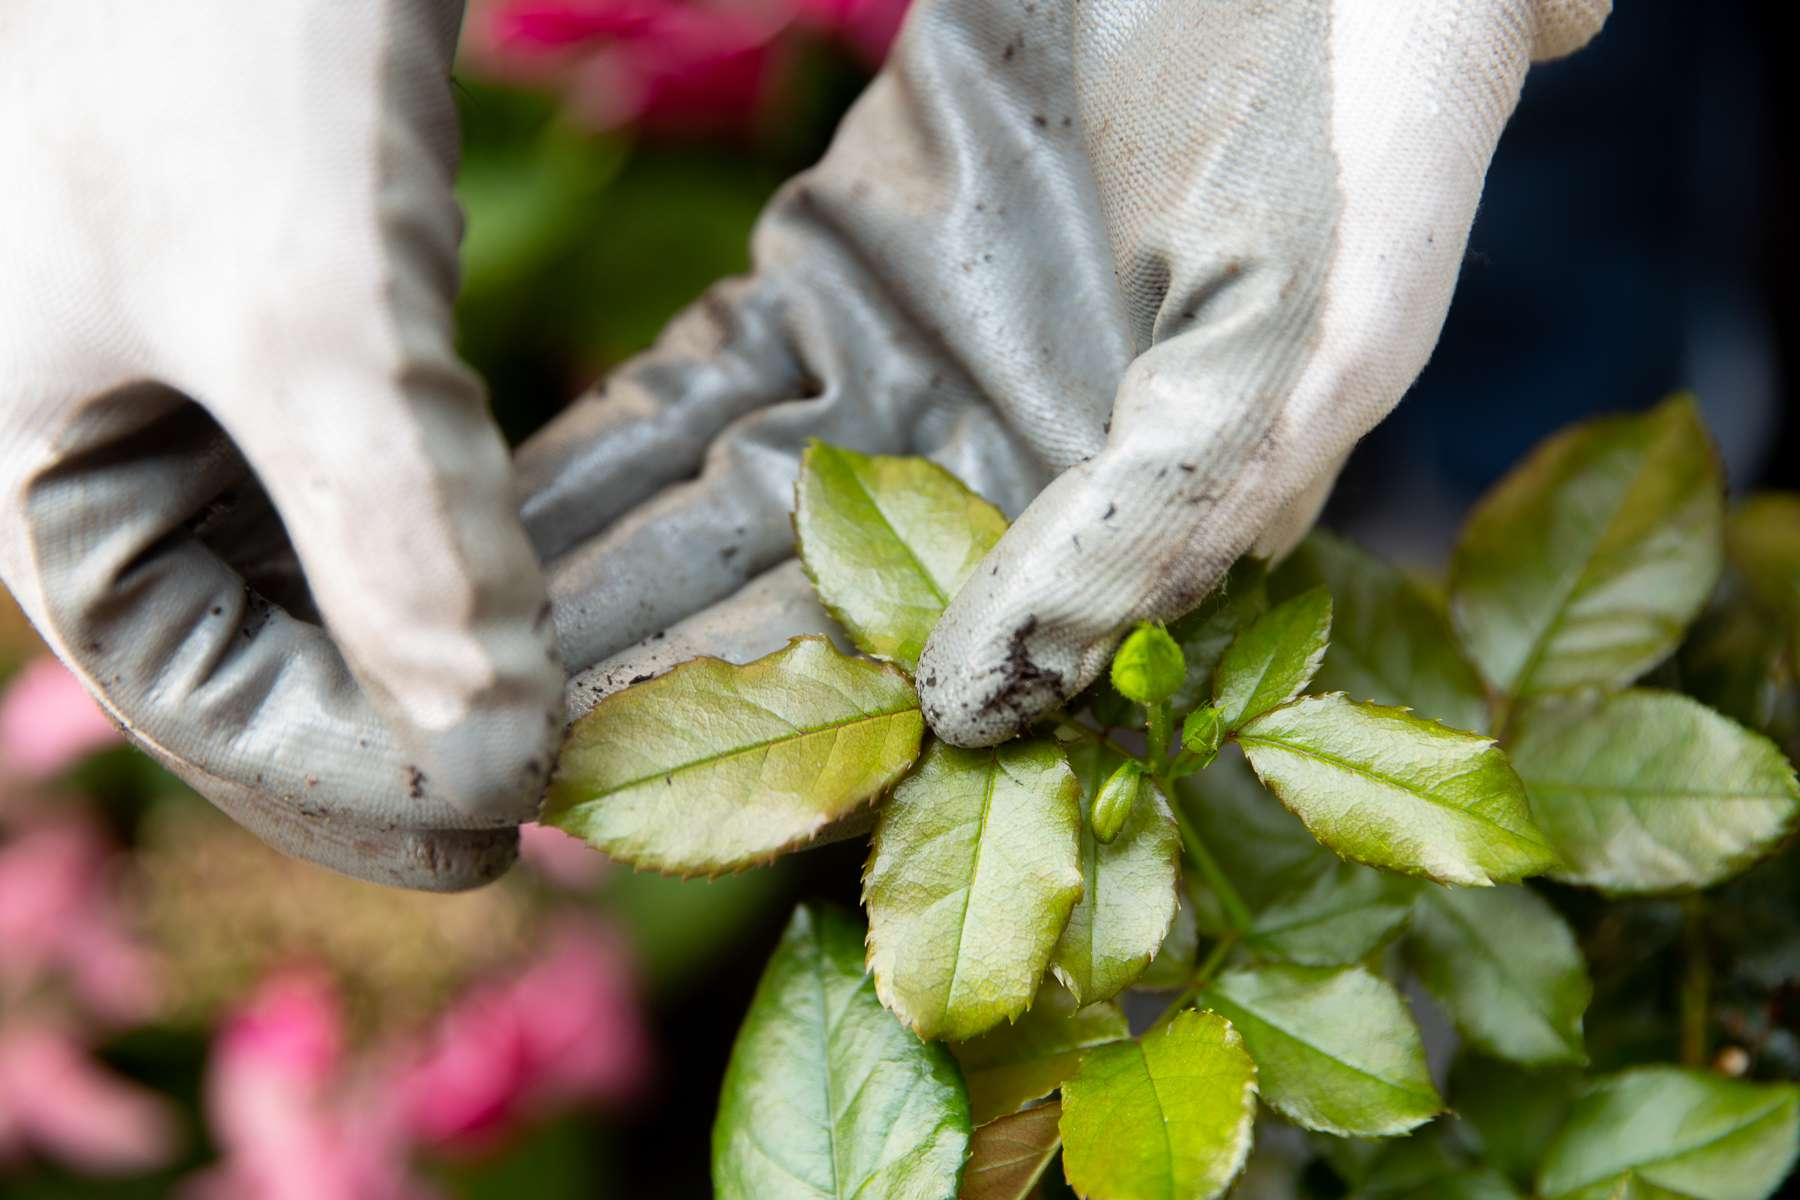 Rose bush leaves with powdery mildew disease held up with gloves